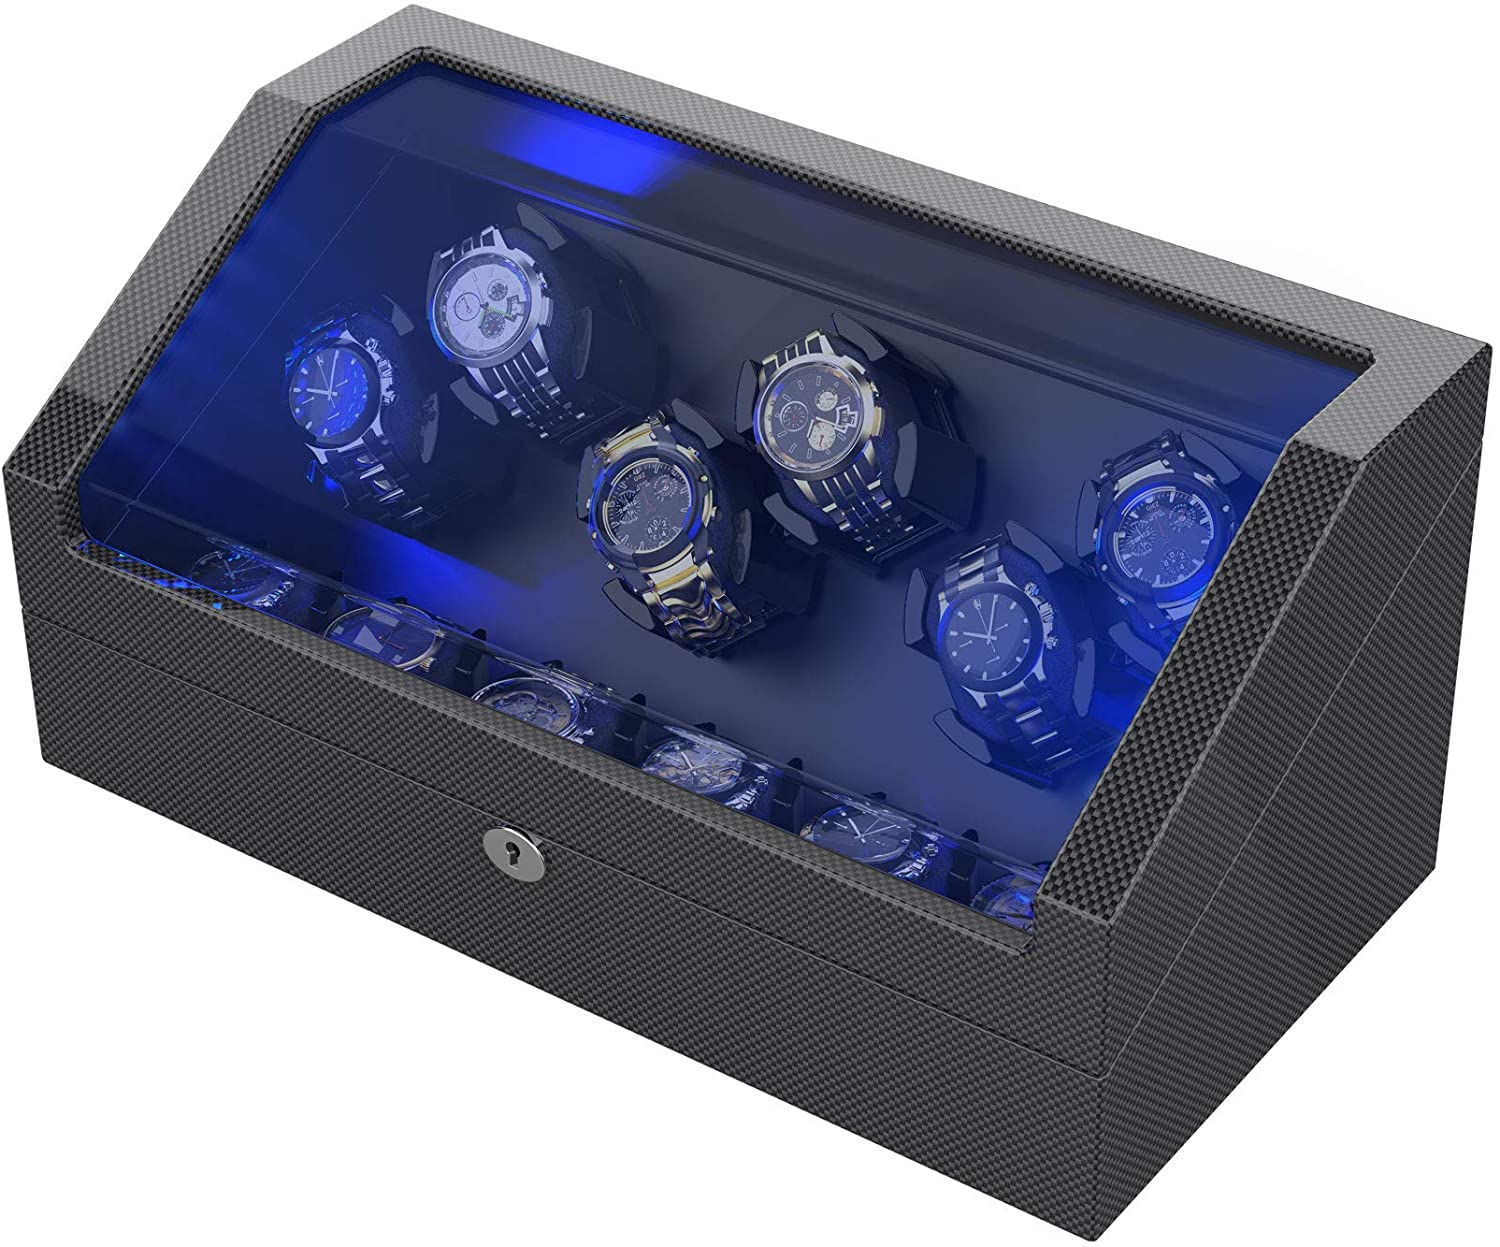 Watch Winder for 12 Automatic Watches with Flexible Watch Pillows, Built-in Led Light, with 6 Oversized Pillows and USB Cable for Portable Power